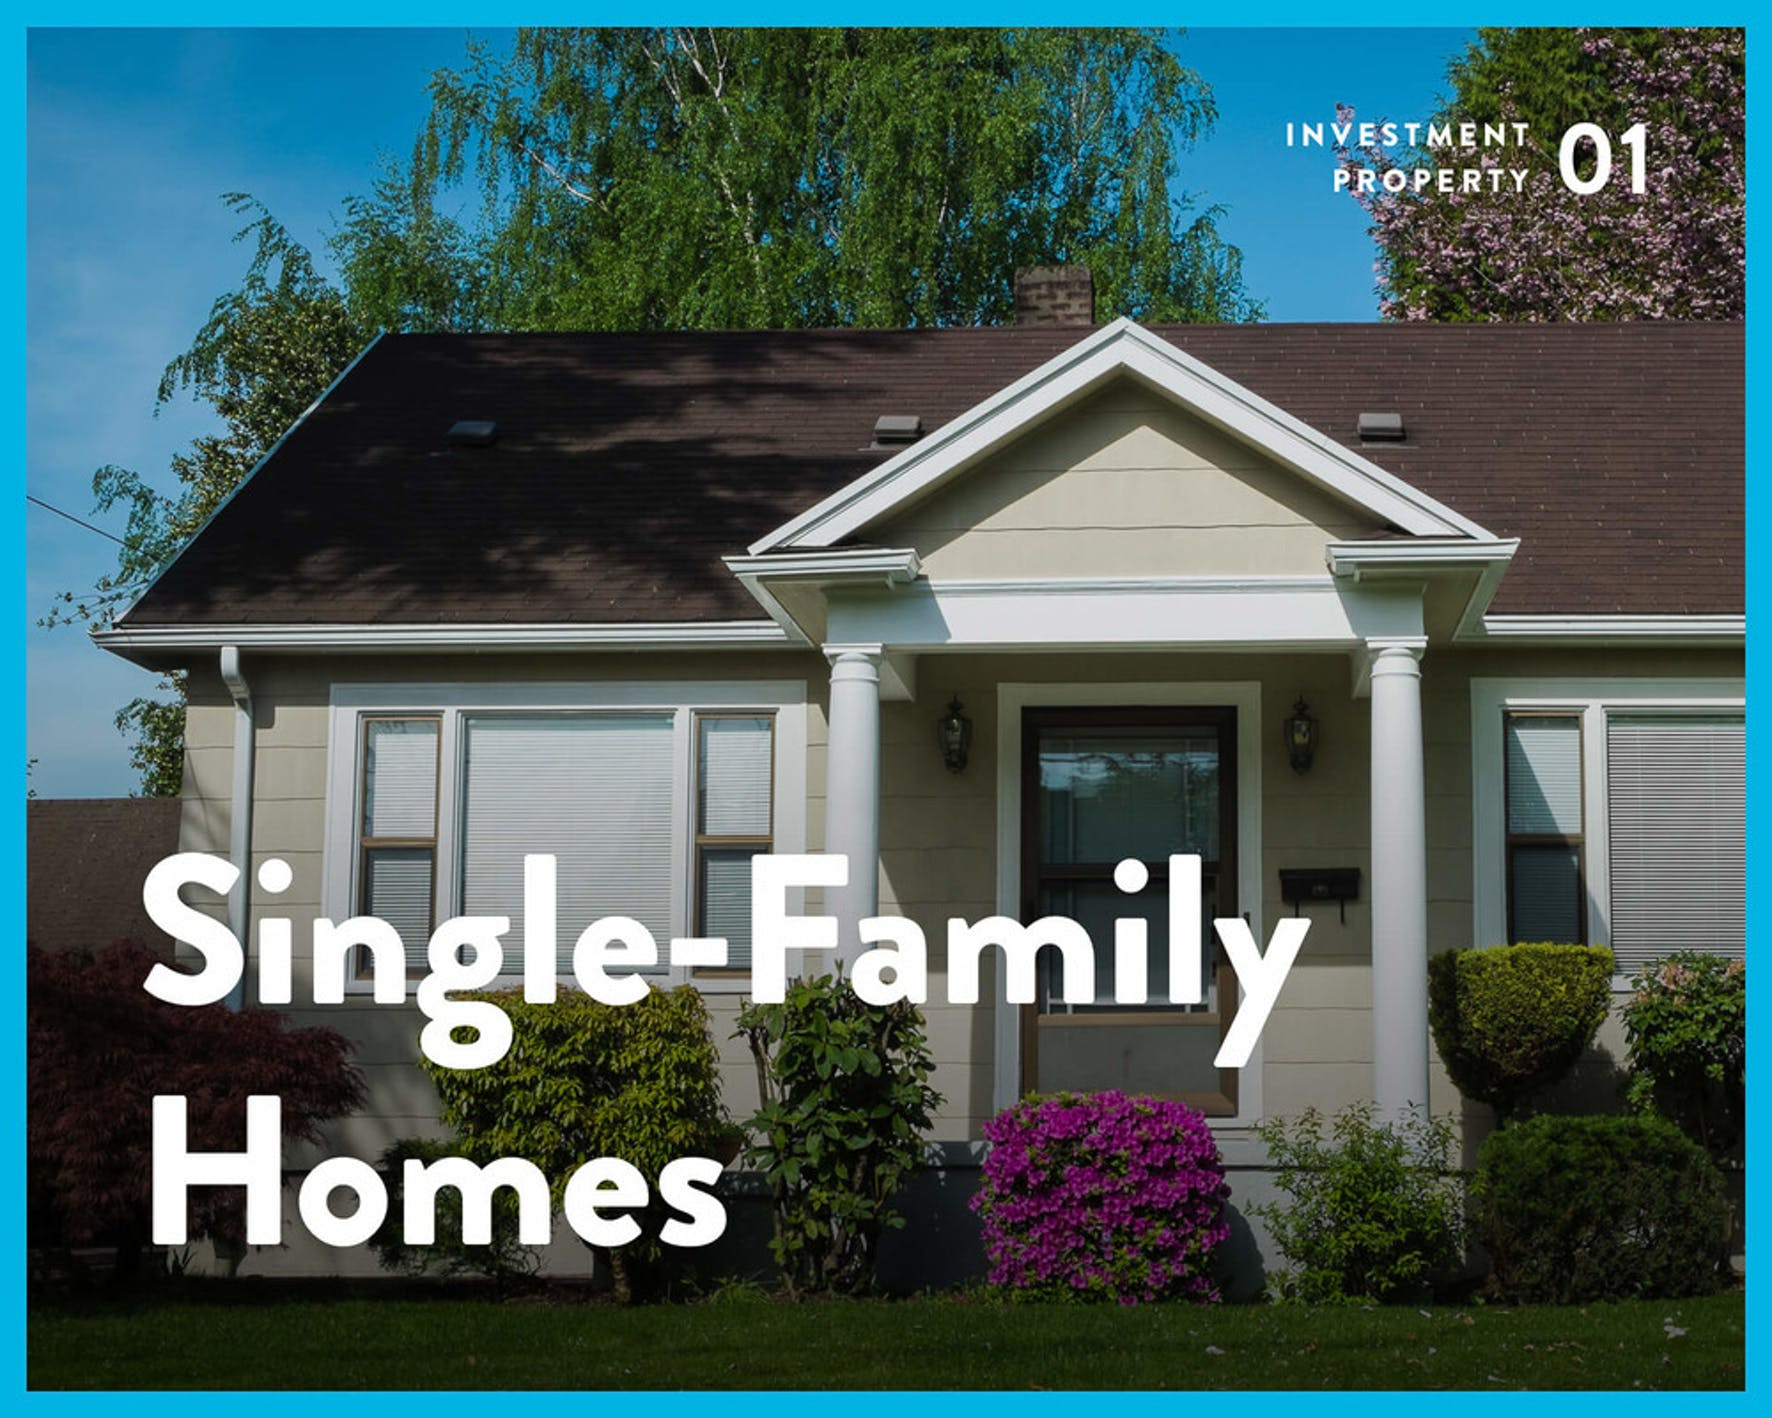 Investing in real estate single-family homes